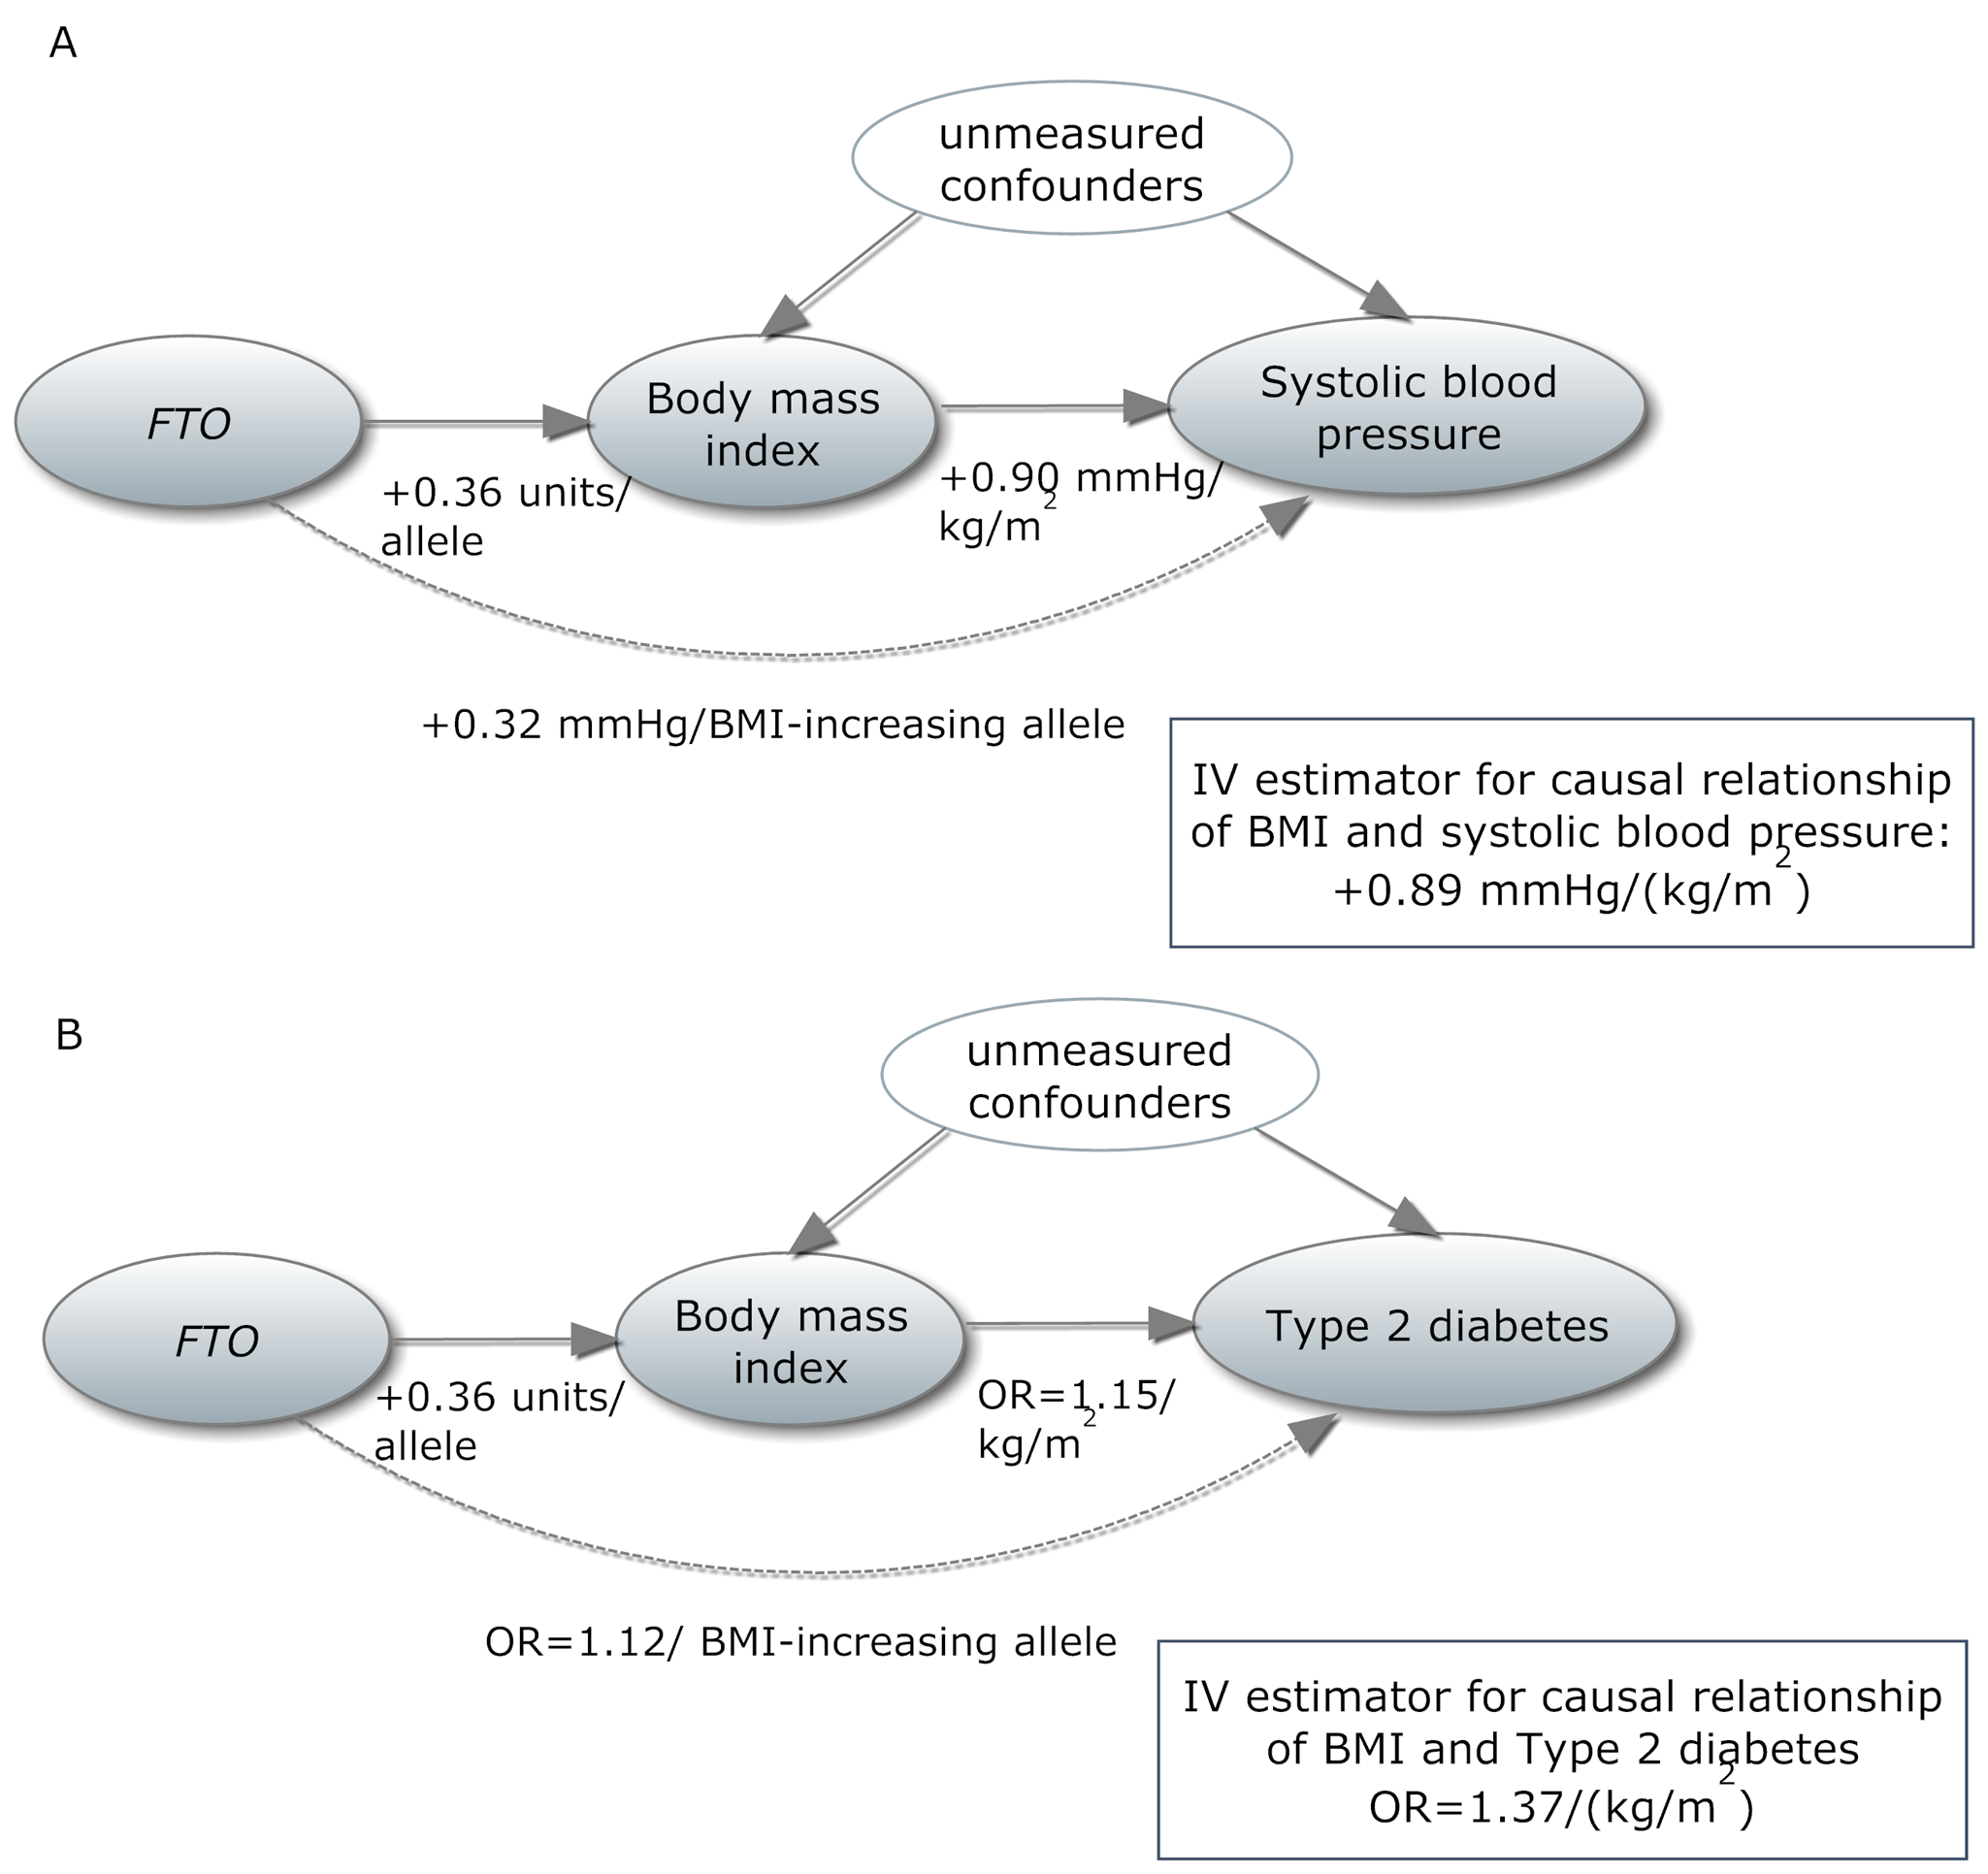 In a Mendelian randomization framework, genotype–phenotype association is assumed to be independent of confounding factors.